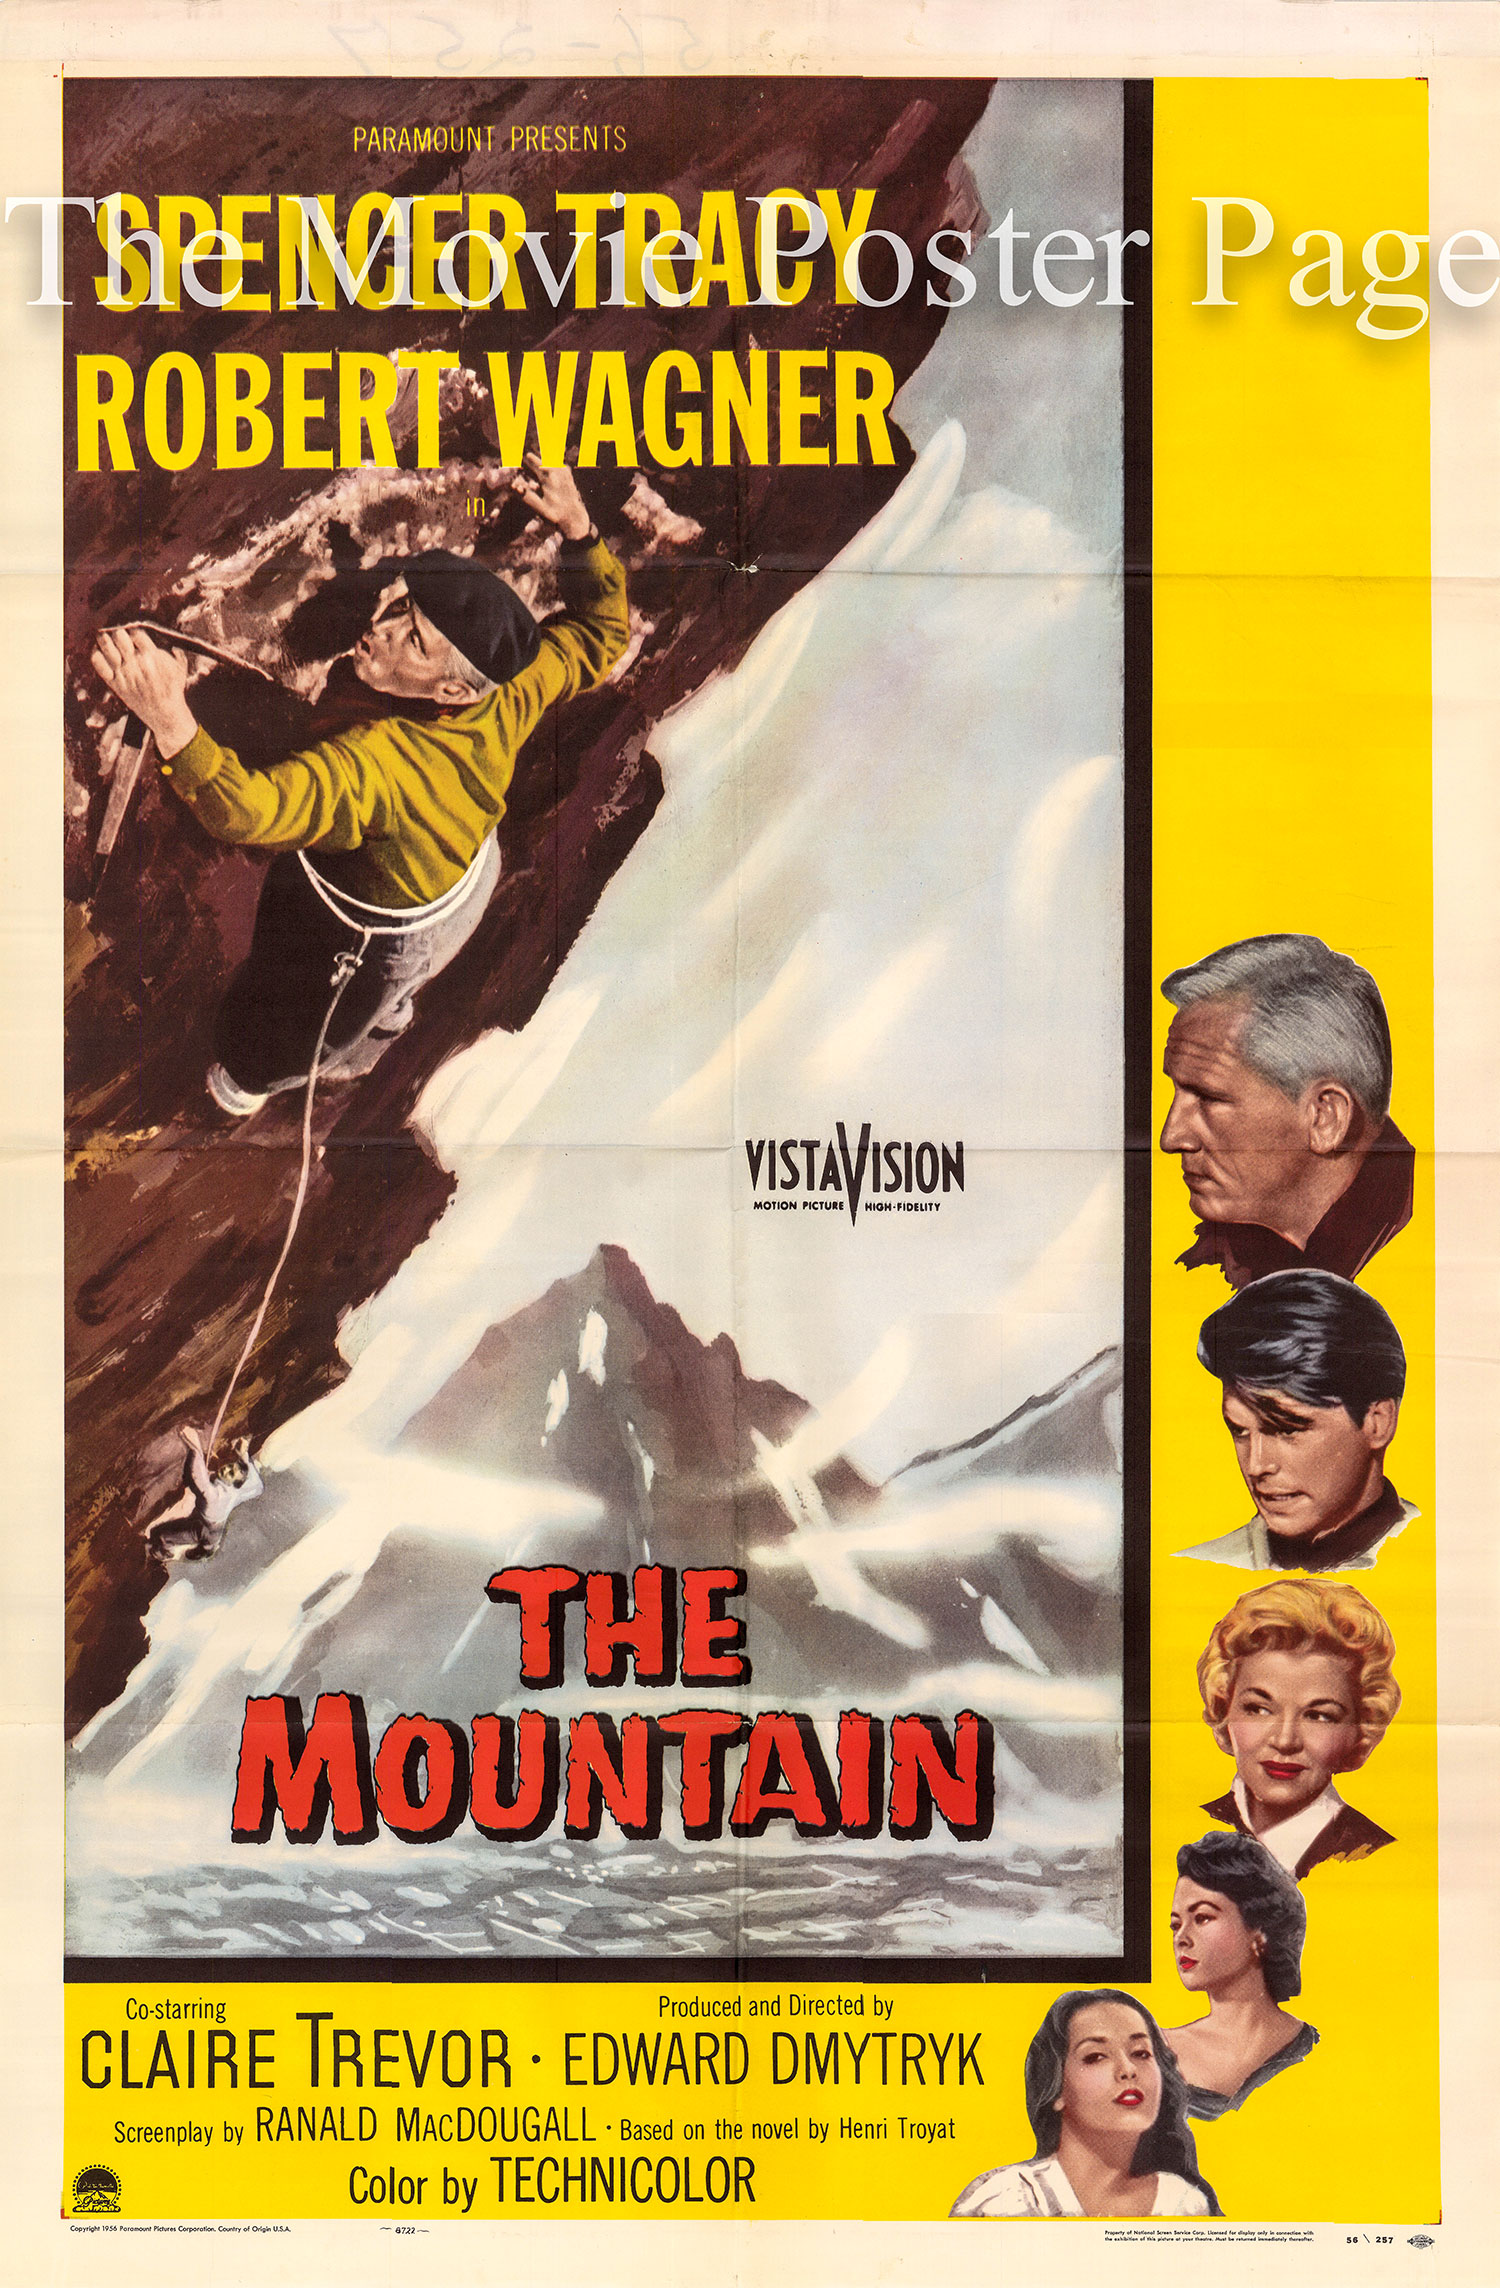 Pictured is a US one-sheet promotional poster for the 1956 Edward Dmytryk film The Mountain starring Spencer Tracy and Robert Wagner.